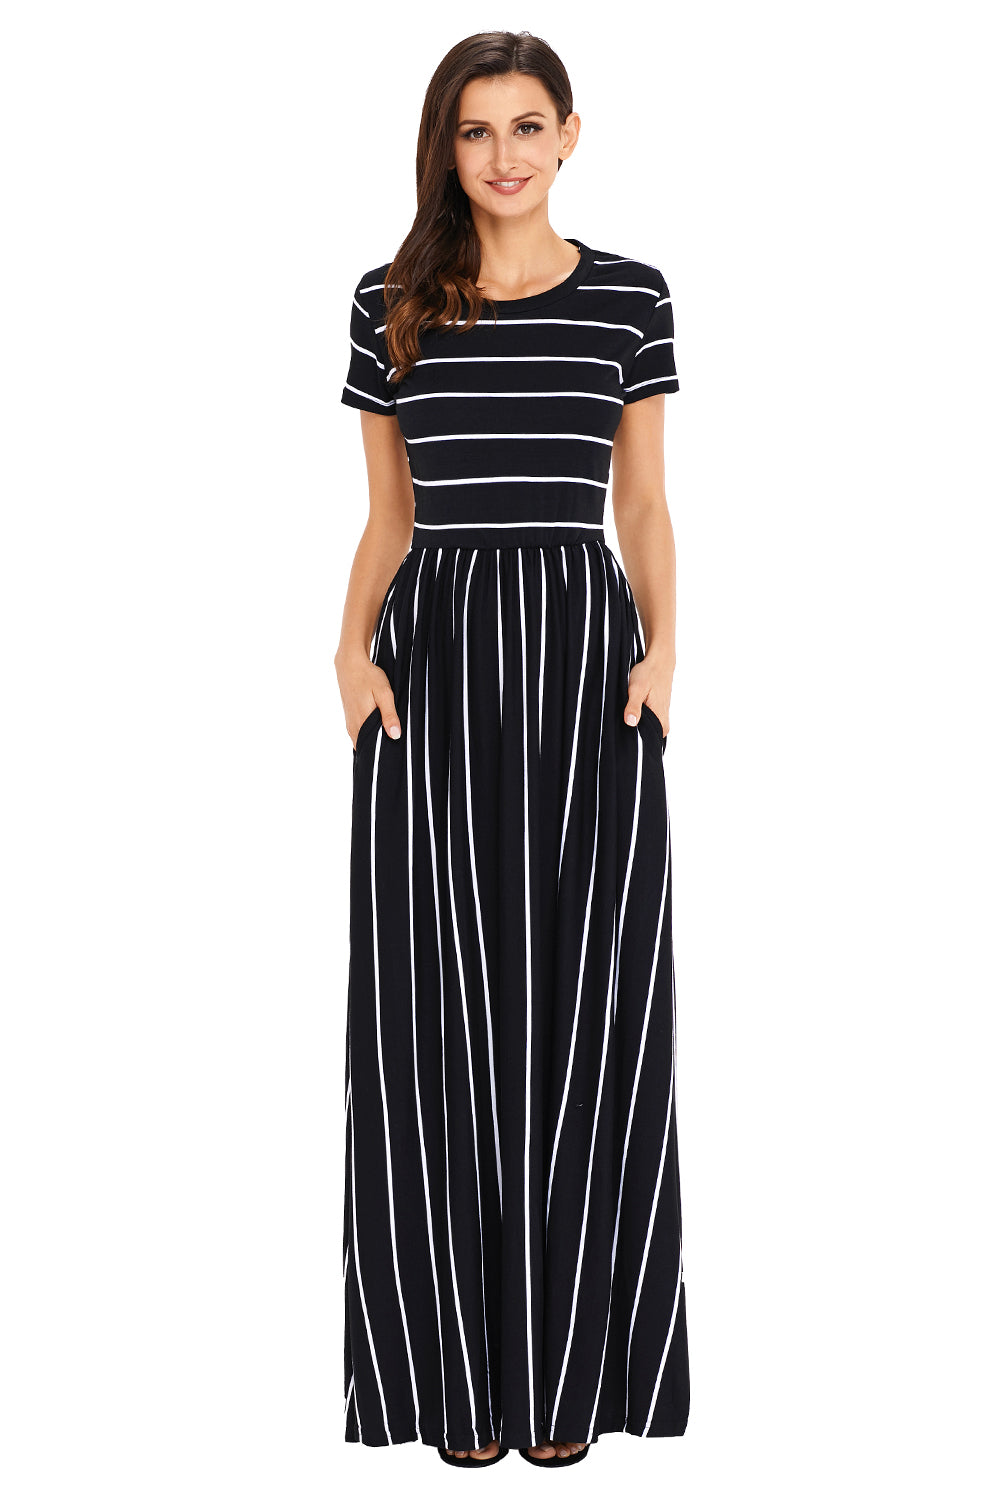 803c80716dee Robe Longue a Rayures Blanche Noire Manches Courtes MB61634-102 ...